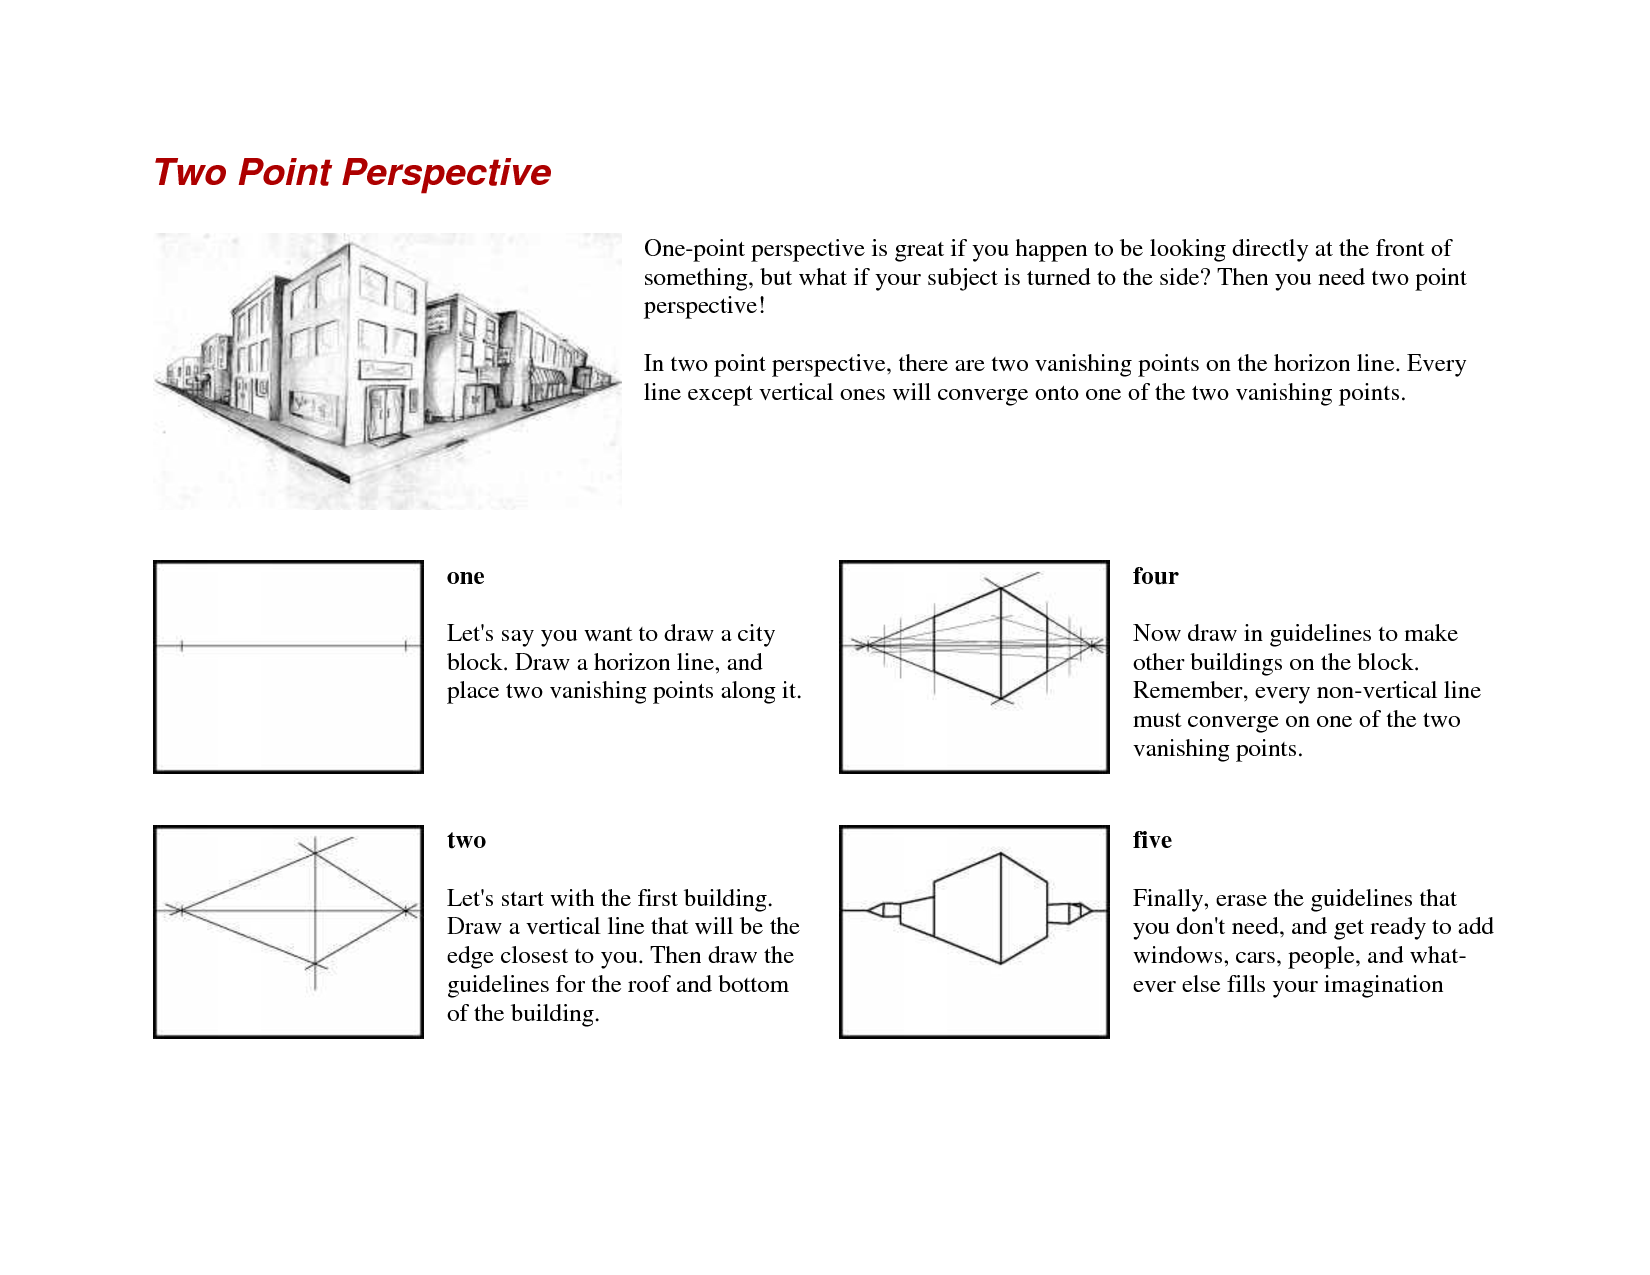 Worksheets One Point Perspective Worksheet onepoint perspective worksheets point two one point